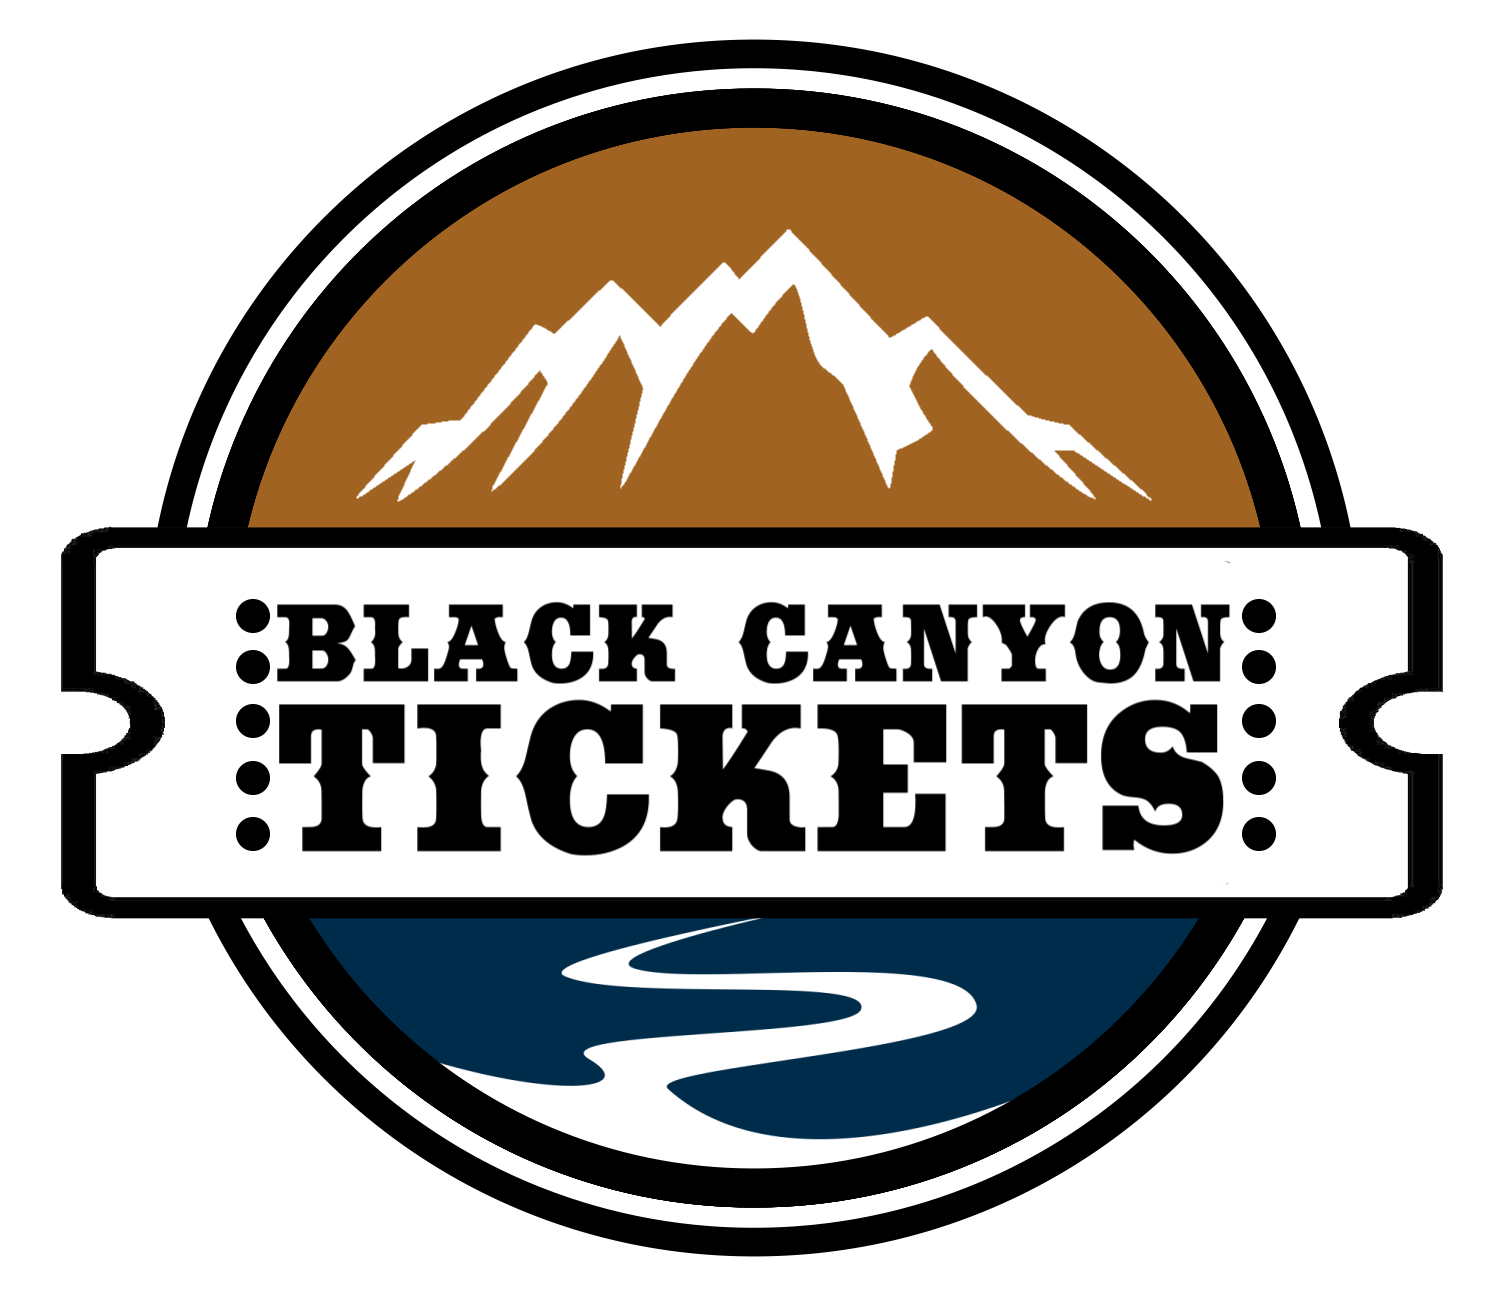 Rocky Mountain Oyster & Red Dirt Festival VIB Section 1 - Black Canyon Tickets